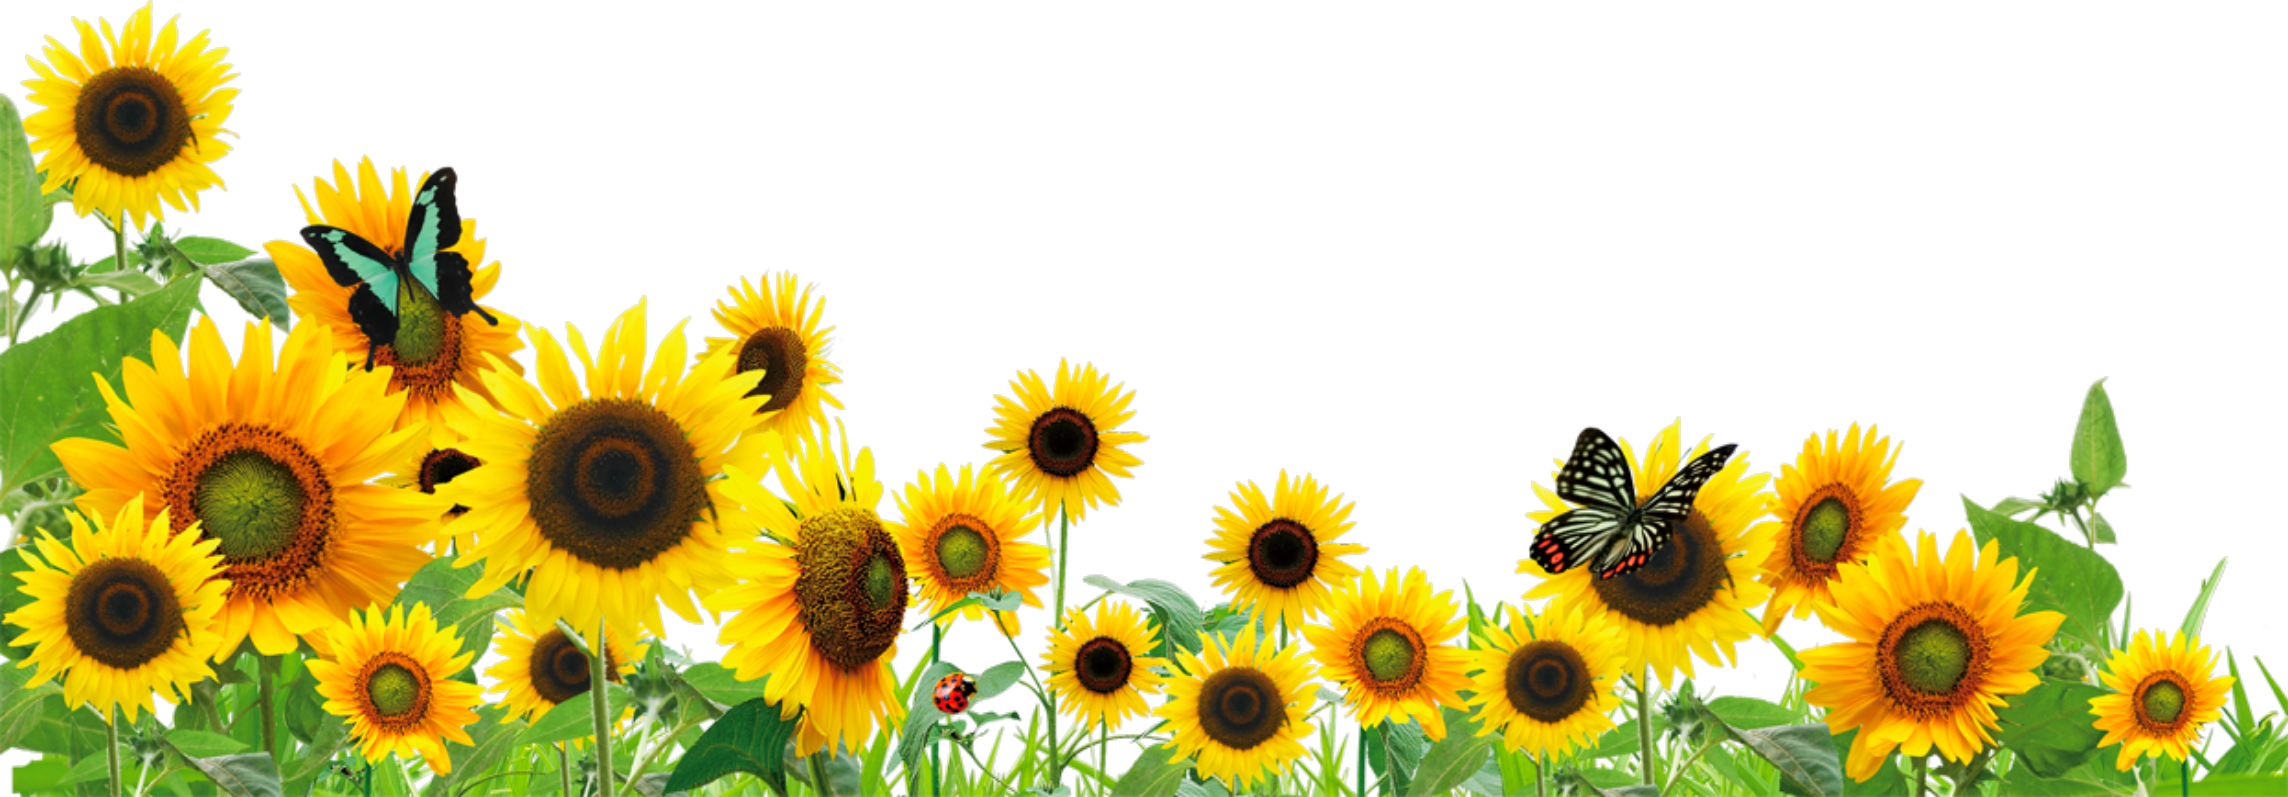 Image result for sunflowers border png